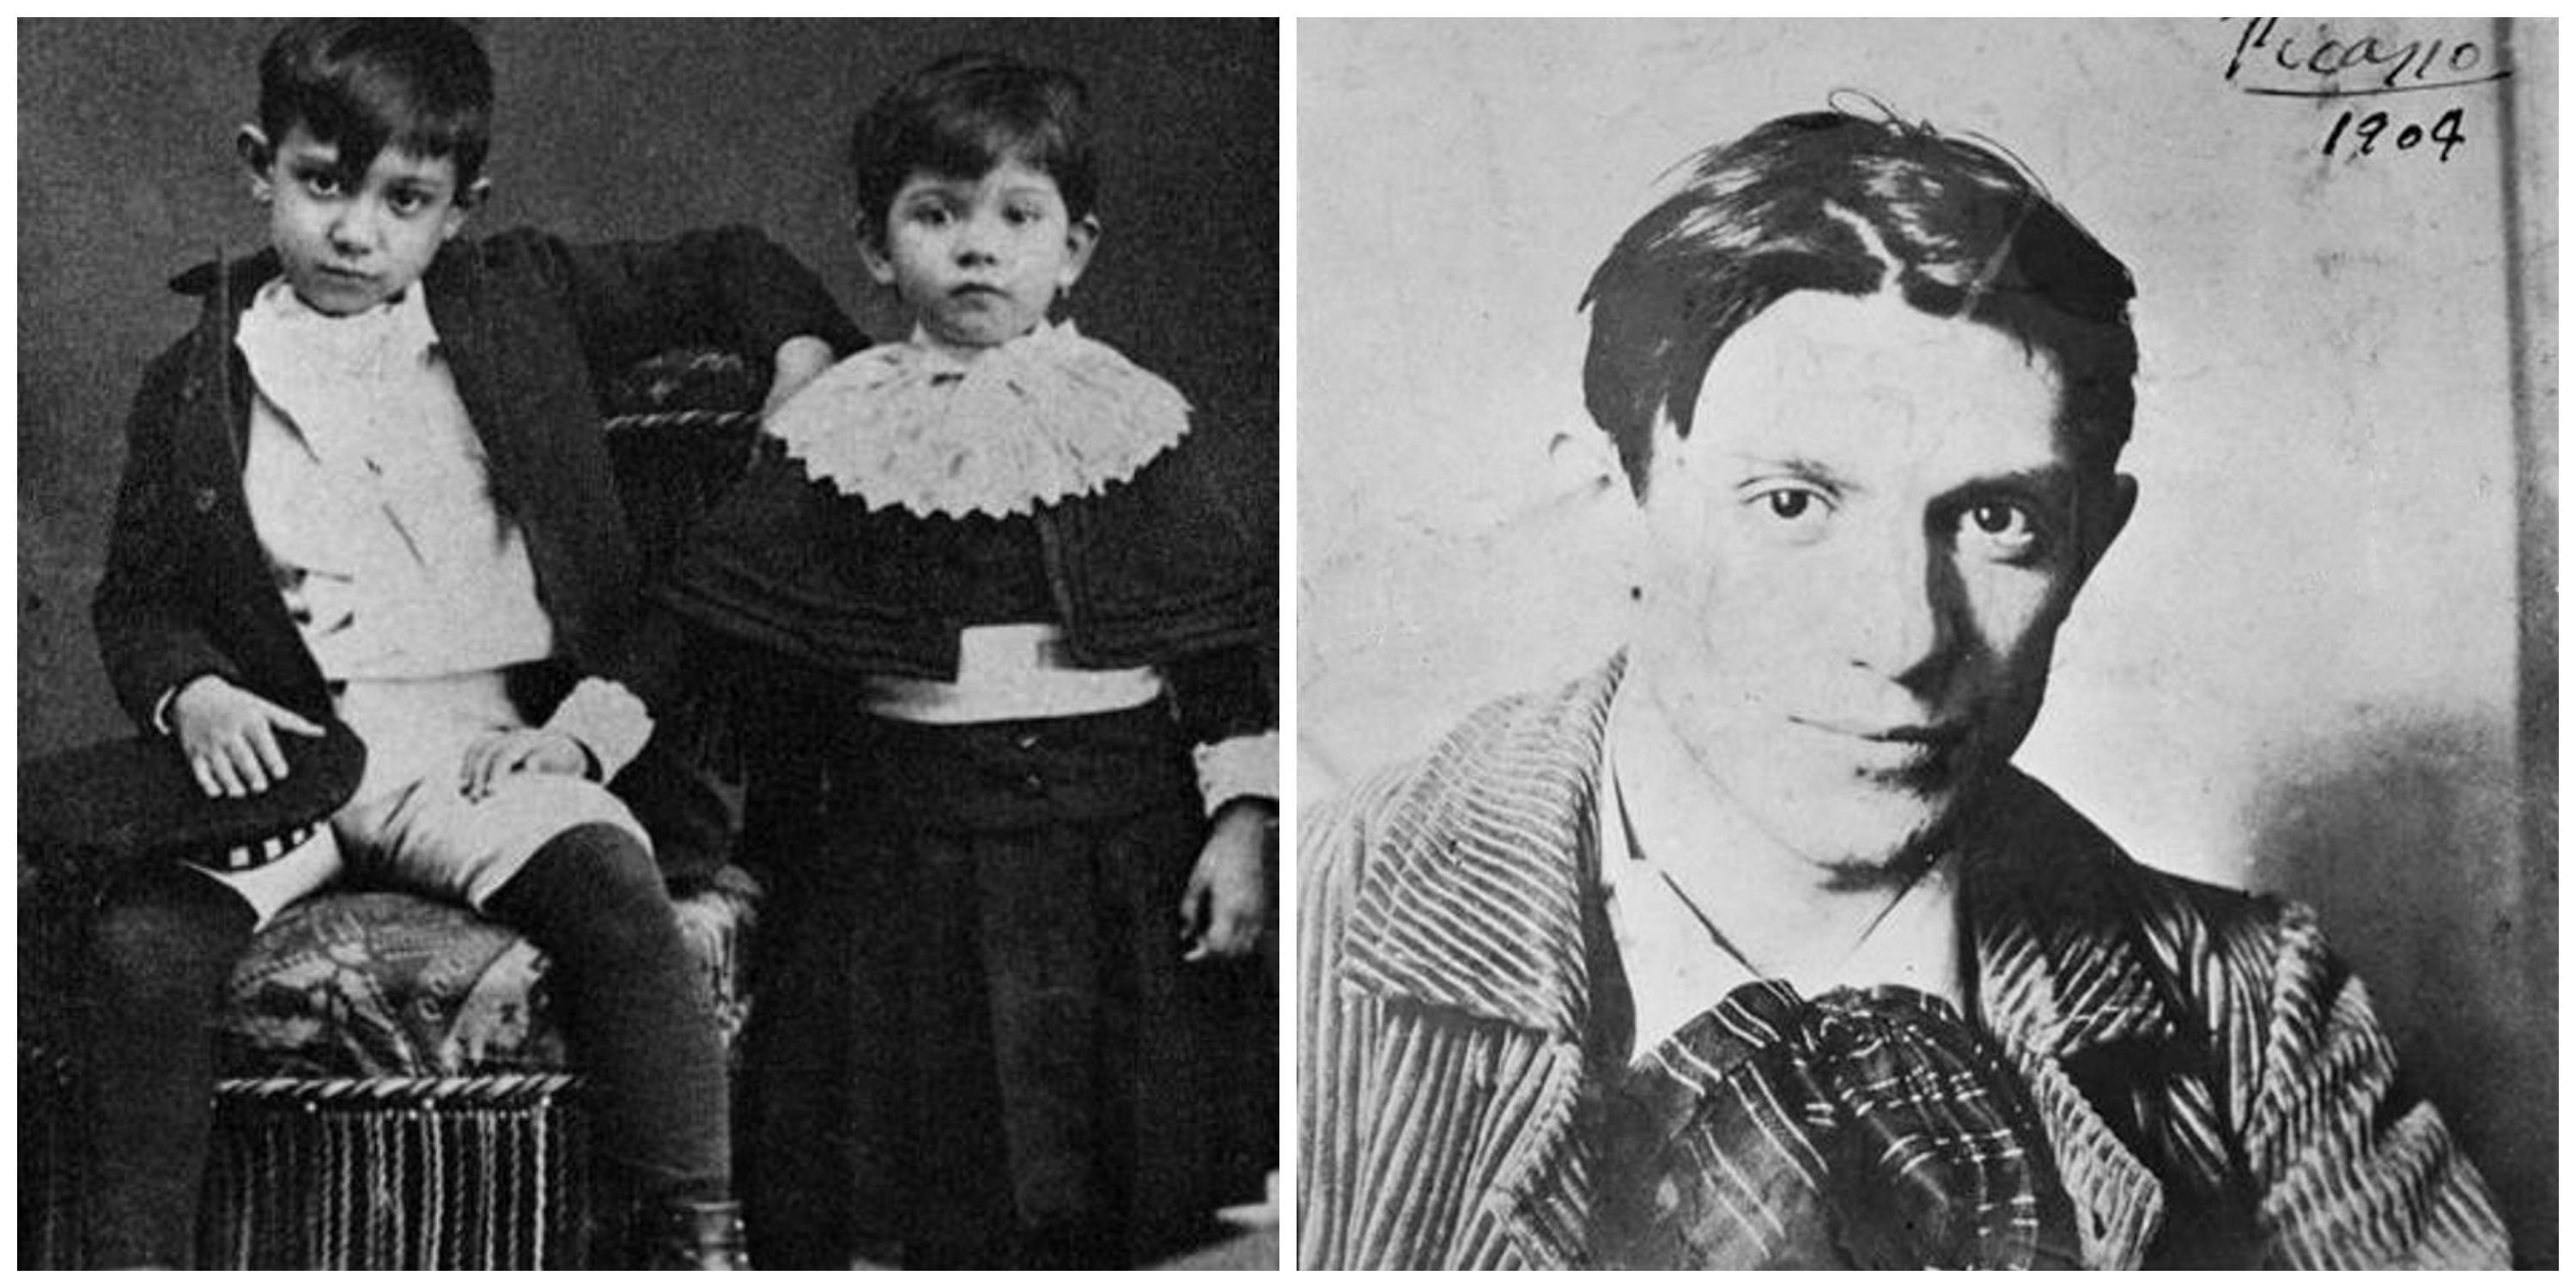 Picasso with his sister CC0 Public Domain | Picasso in 1904 © RMN-Grand Palais